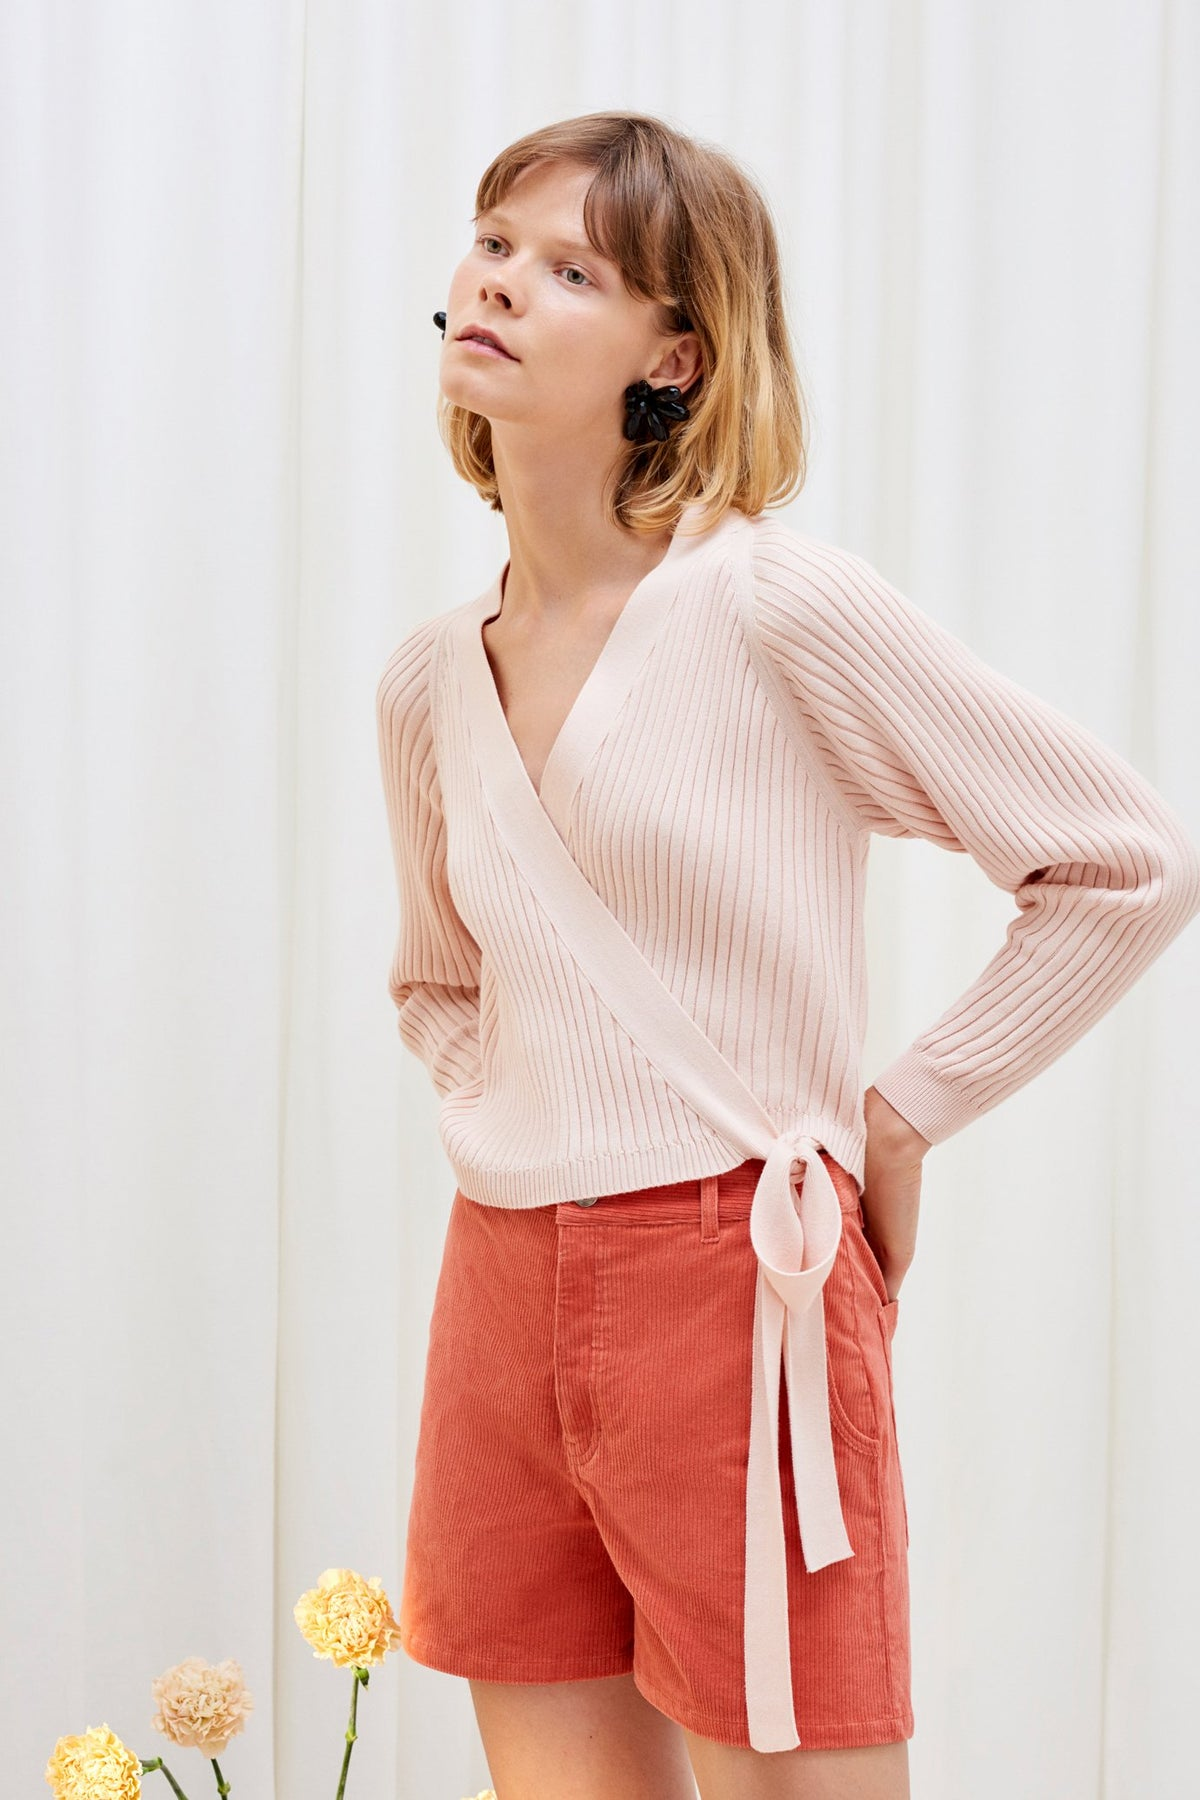 Kowtow stockists composure cardigan Organic Fairtrade Ethical